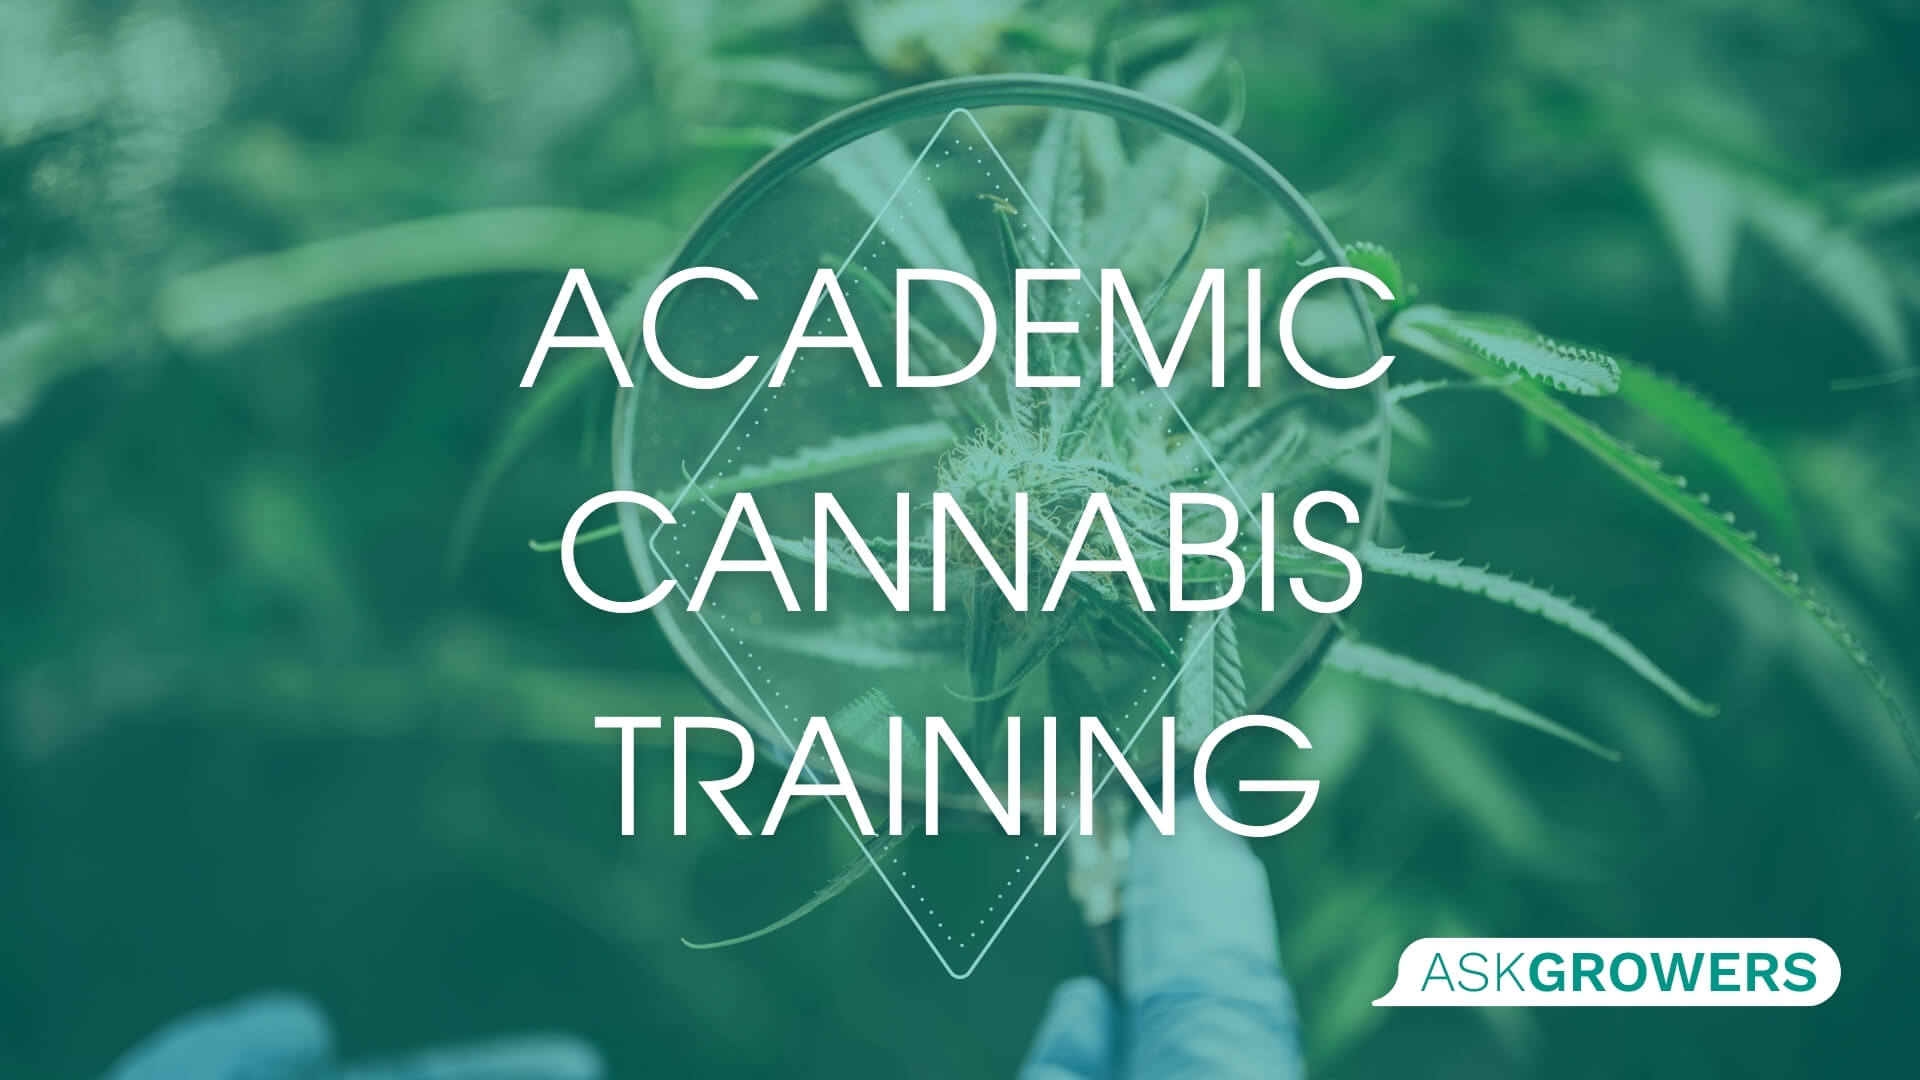 Academically Trained Cannabis Pros, AskGrowers